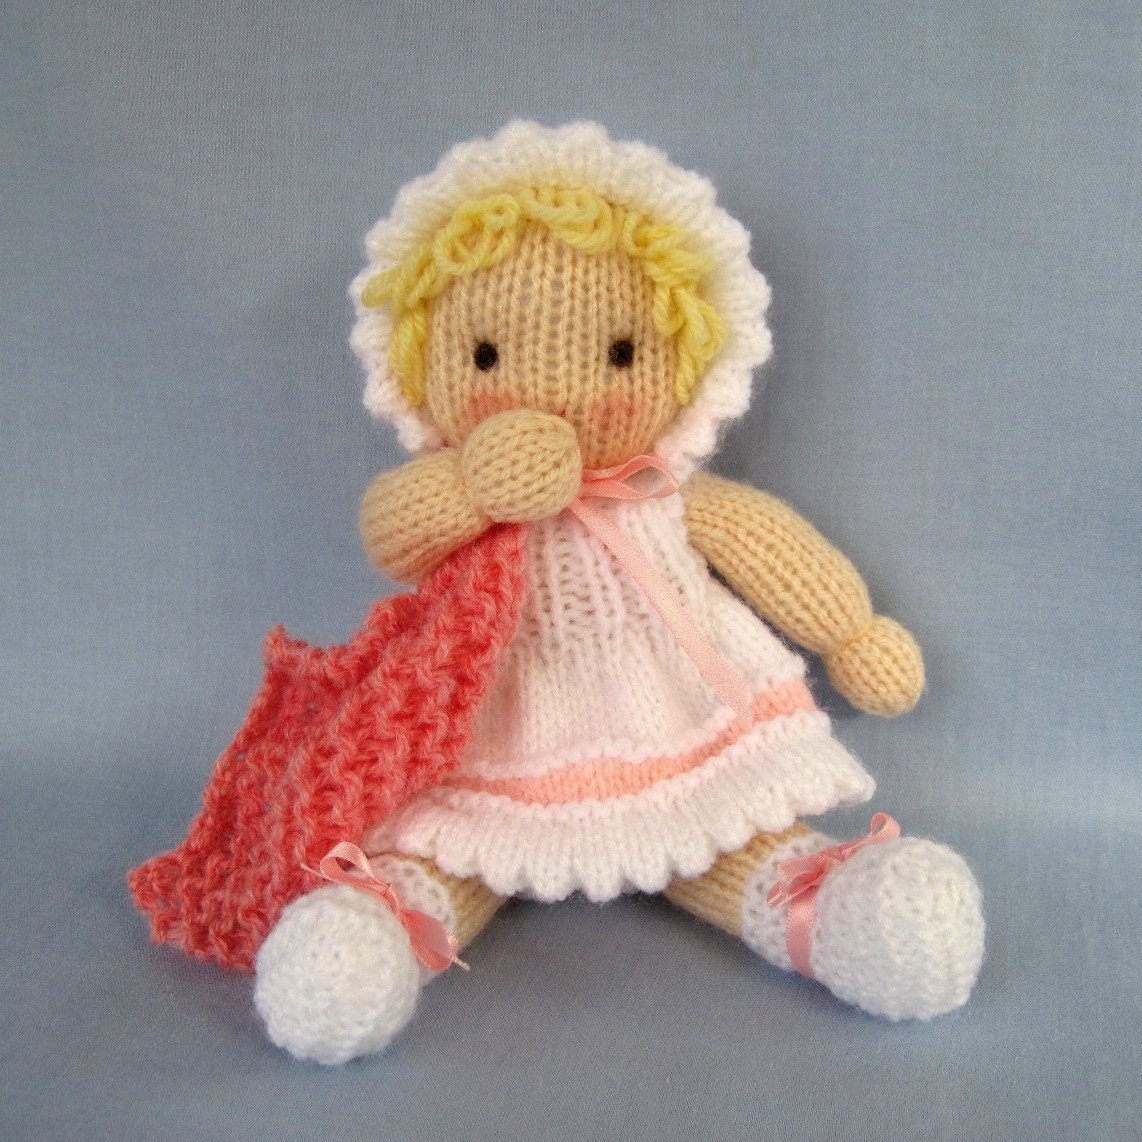 Free Knitting Patterns For Beginners Toys : LITTLE DAISY knitted toy baby doll PDF email by dollytime